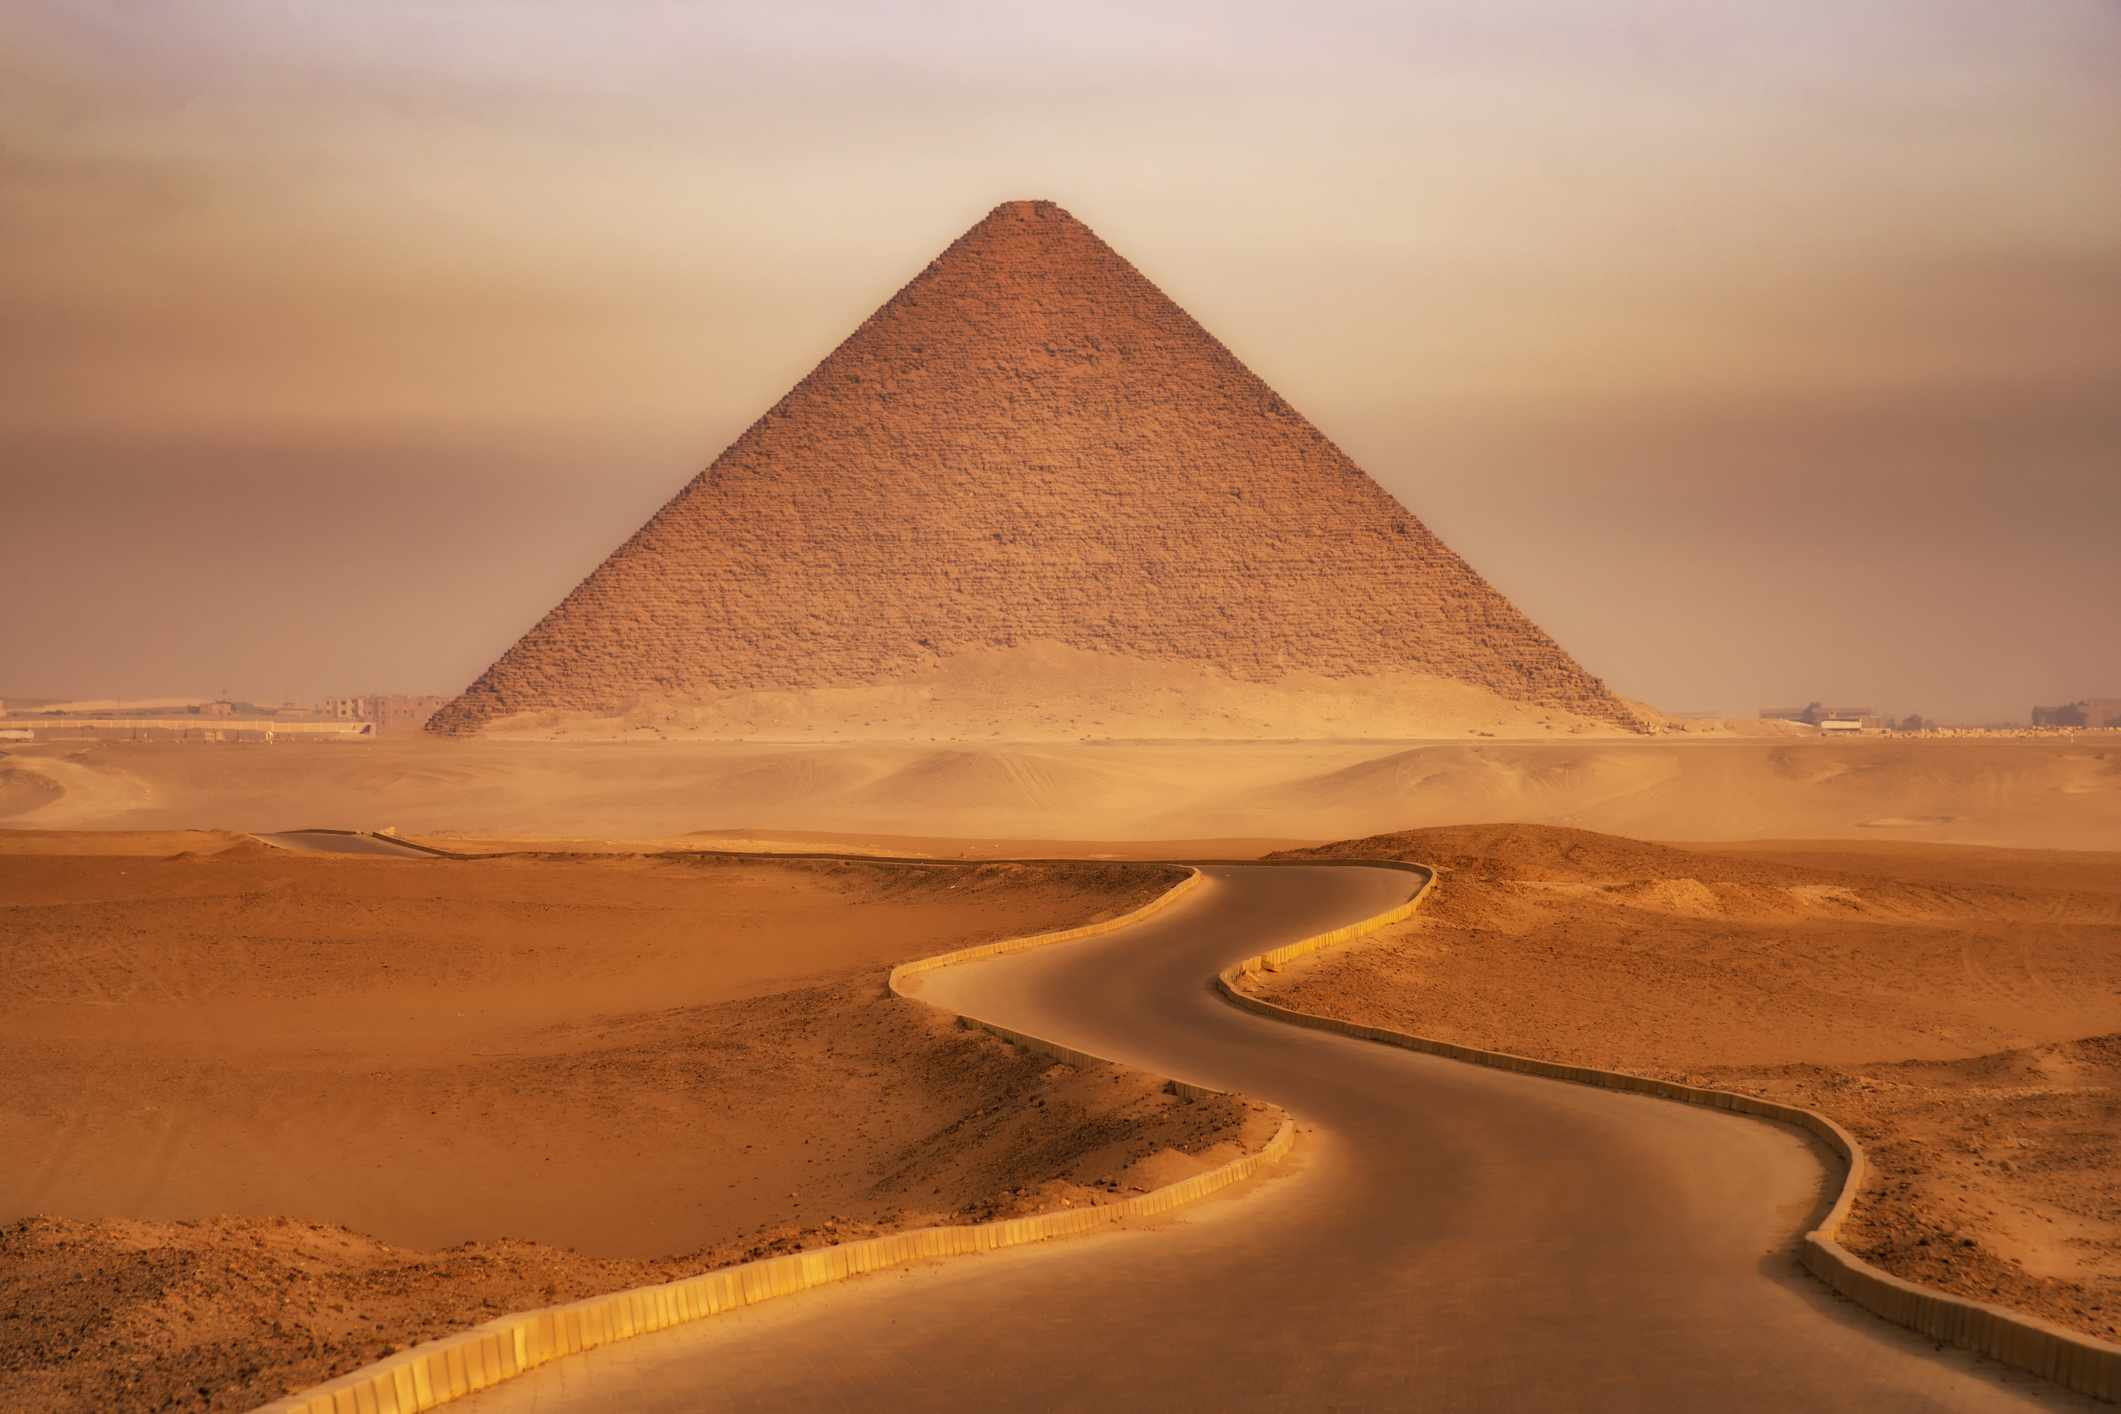 Road leading to the Red Pyramid of Dahshur, Egypt